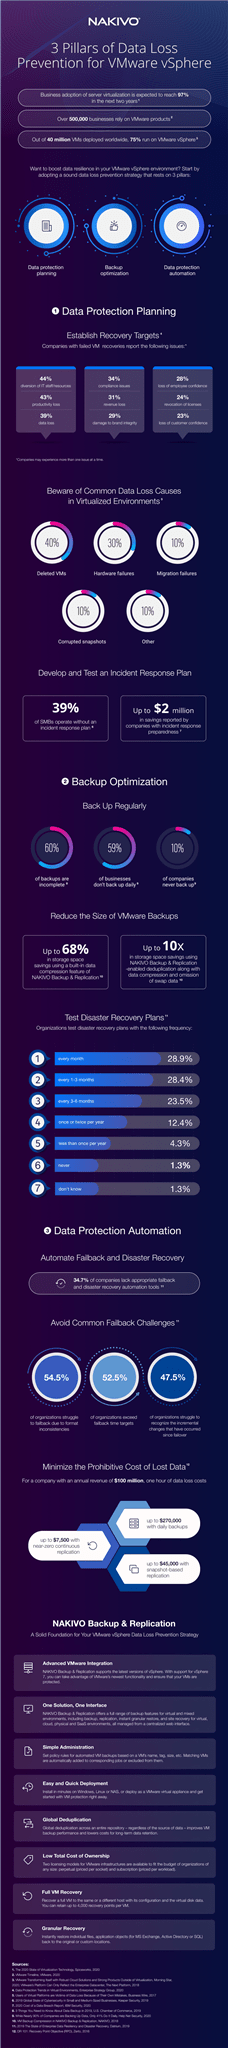 3 Pillars of Data loss prevention for Vmware Vsphere